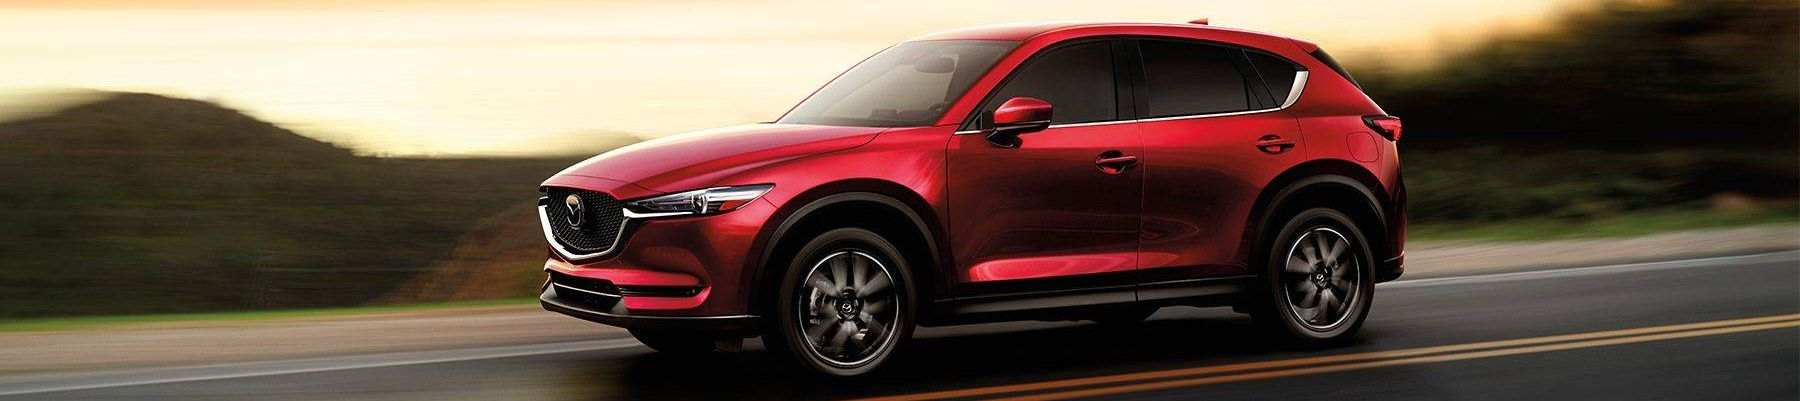 2018 Mazda CX-5 for Sale in Webster, TX